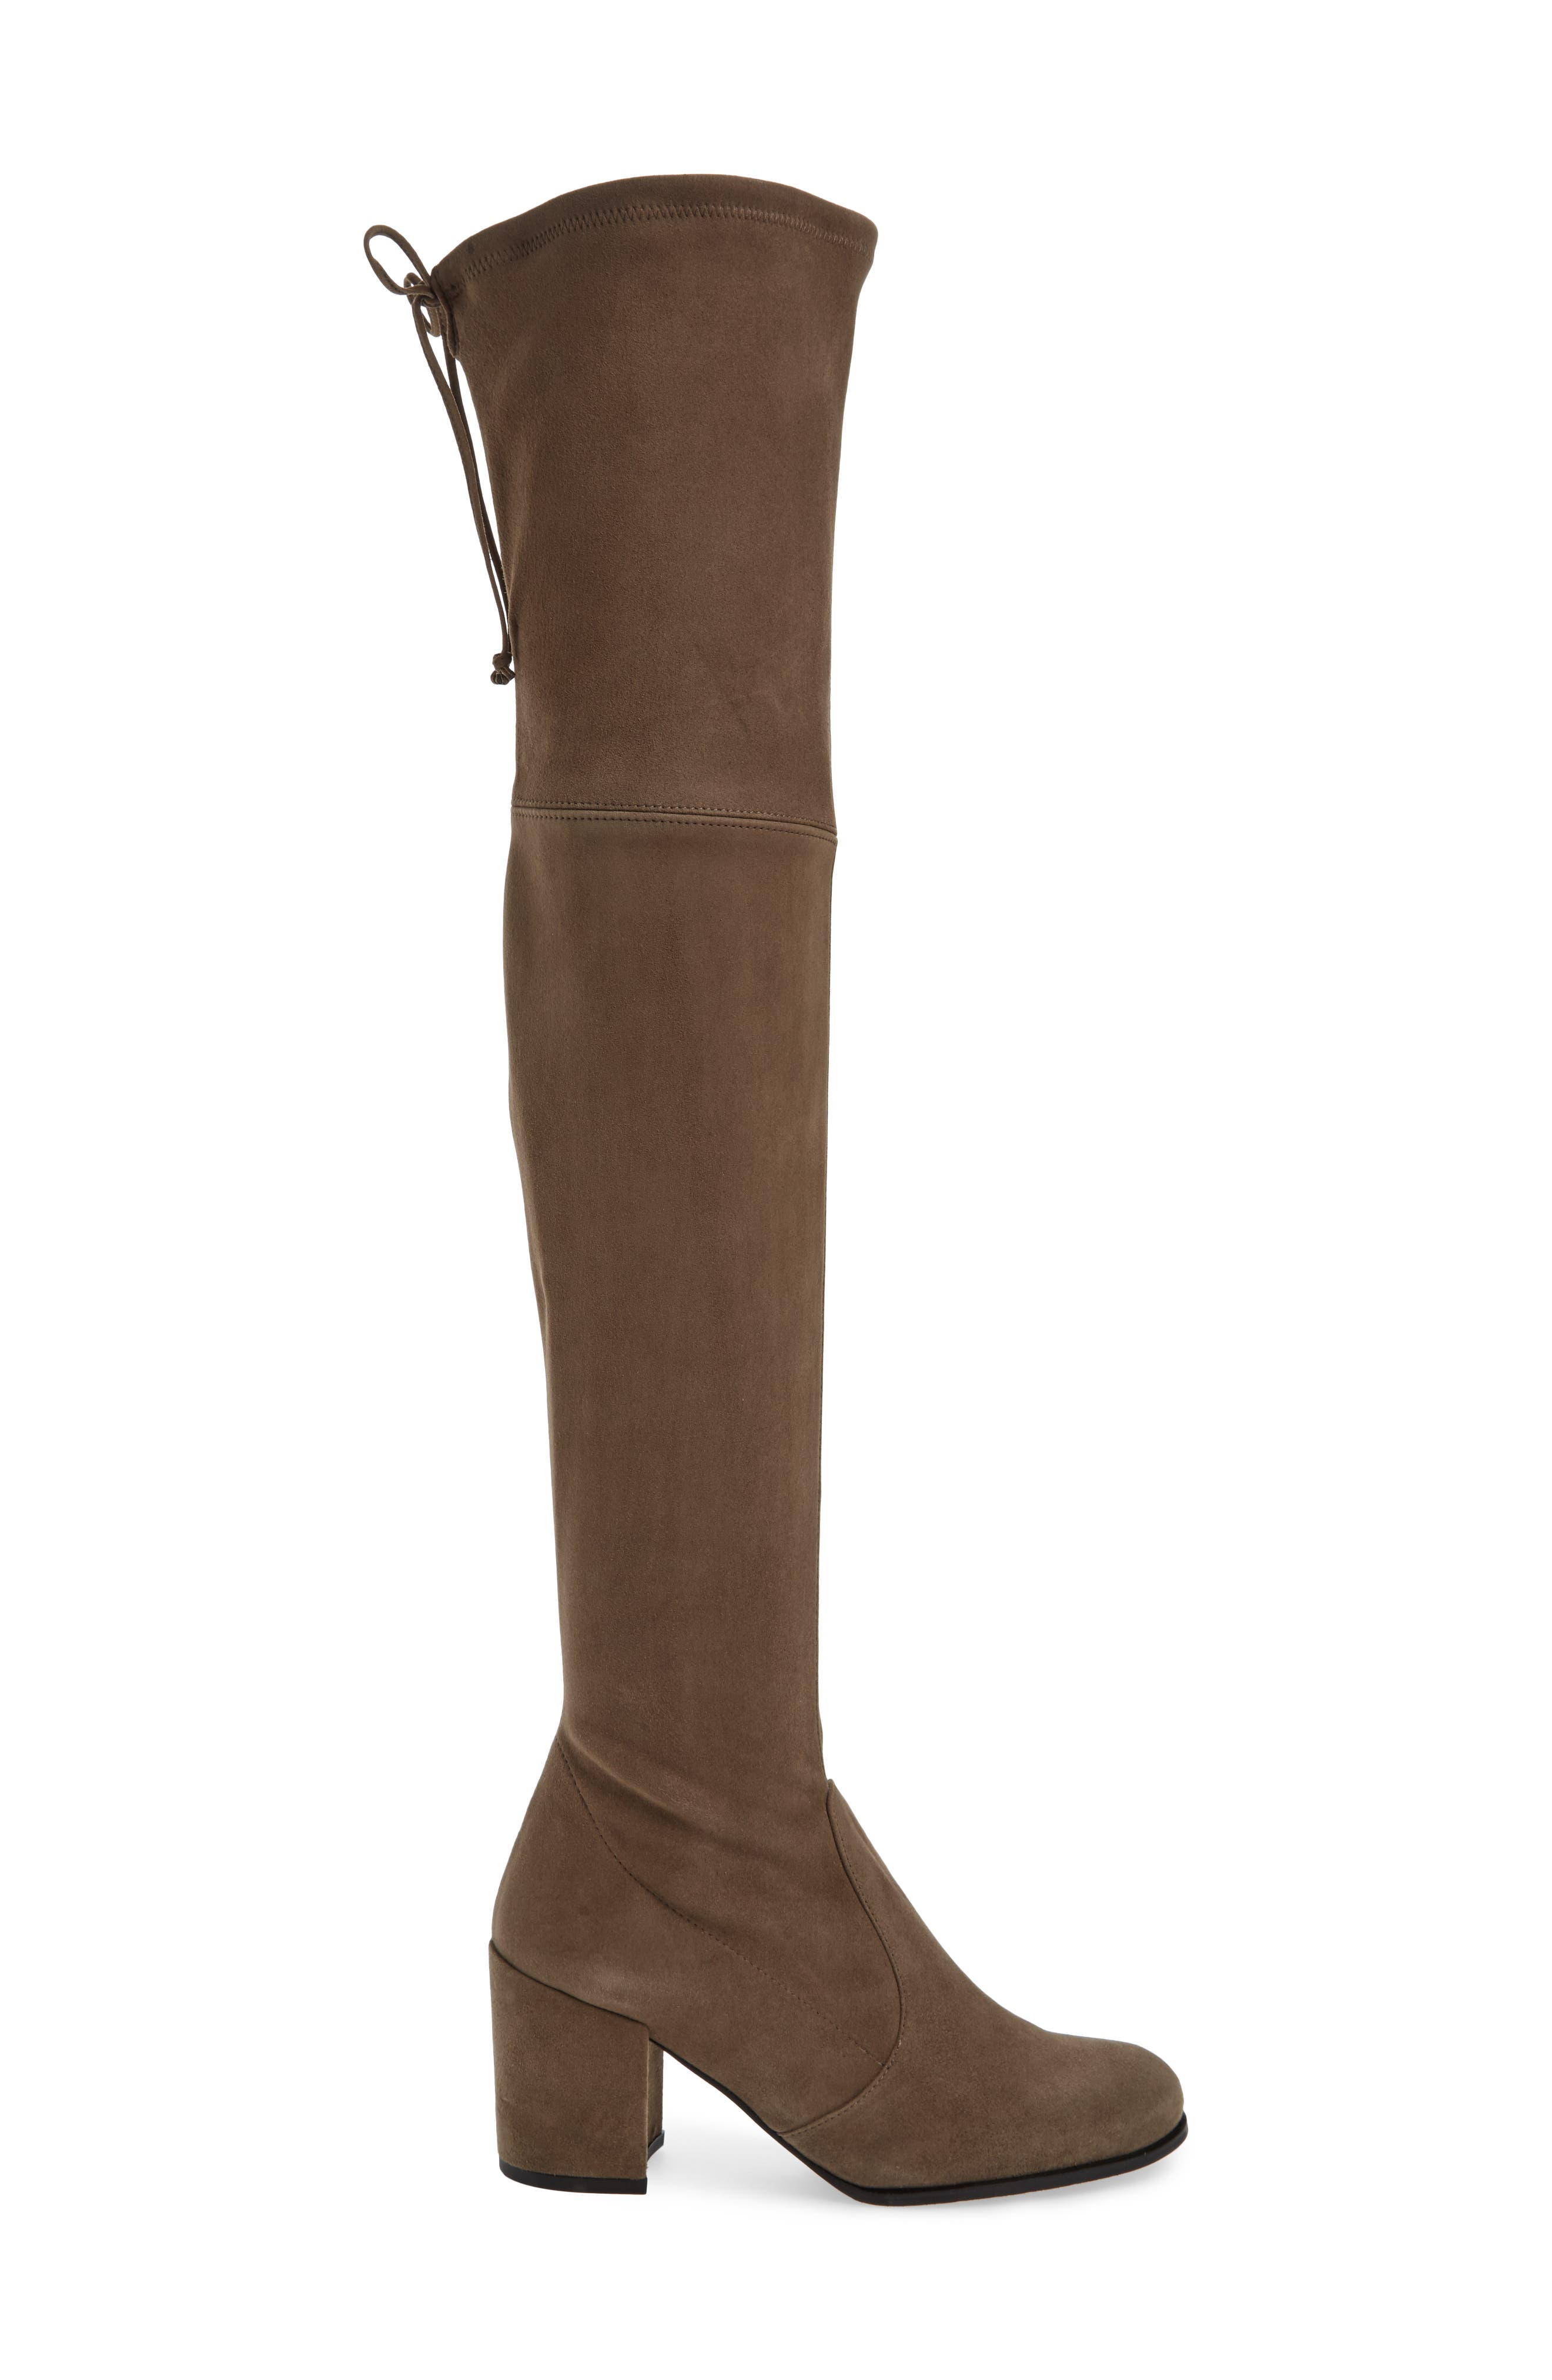 Tieland Over the Knee Boot,                             Alternate thumbnail 3, color,                             Praline Suede